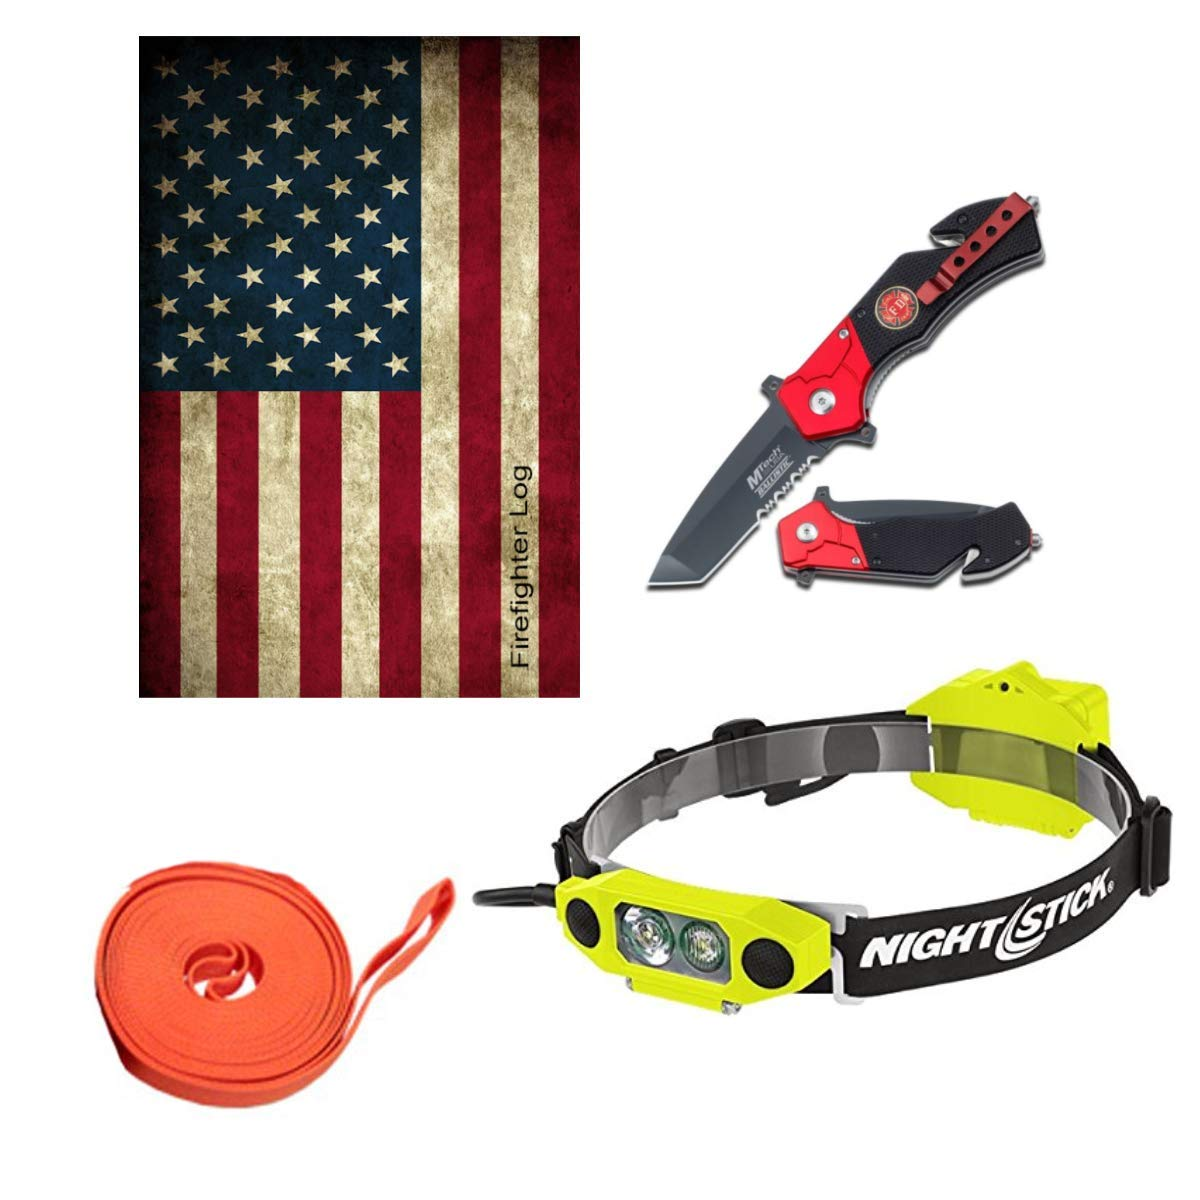 Tactical Flashlight Tools Firefighter Bundle- 1 - Tactical Light Headlamp | 1 - Tactical Knife | 1 - Drag Strap | 1 - Firefighter Log Book (Track training hours, Run activities, work, ect.) by Legacy Tactical